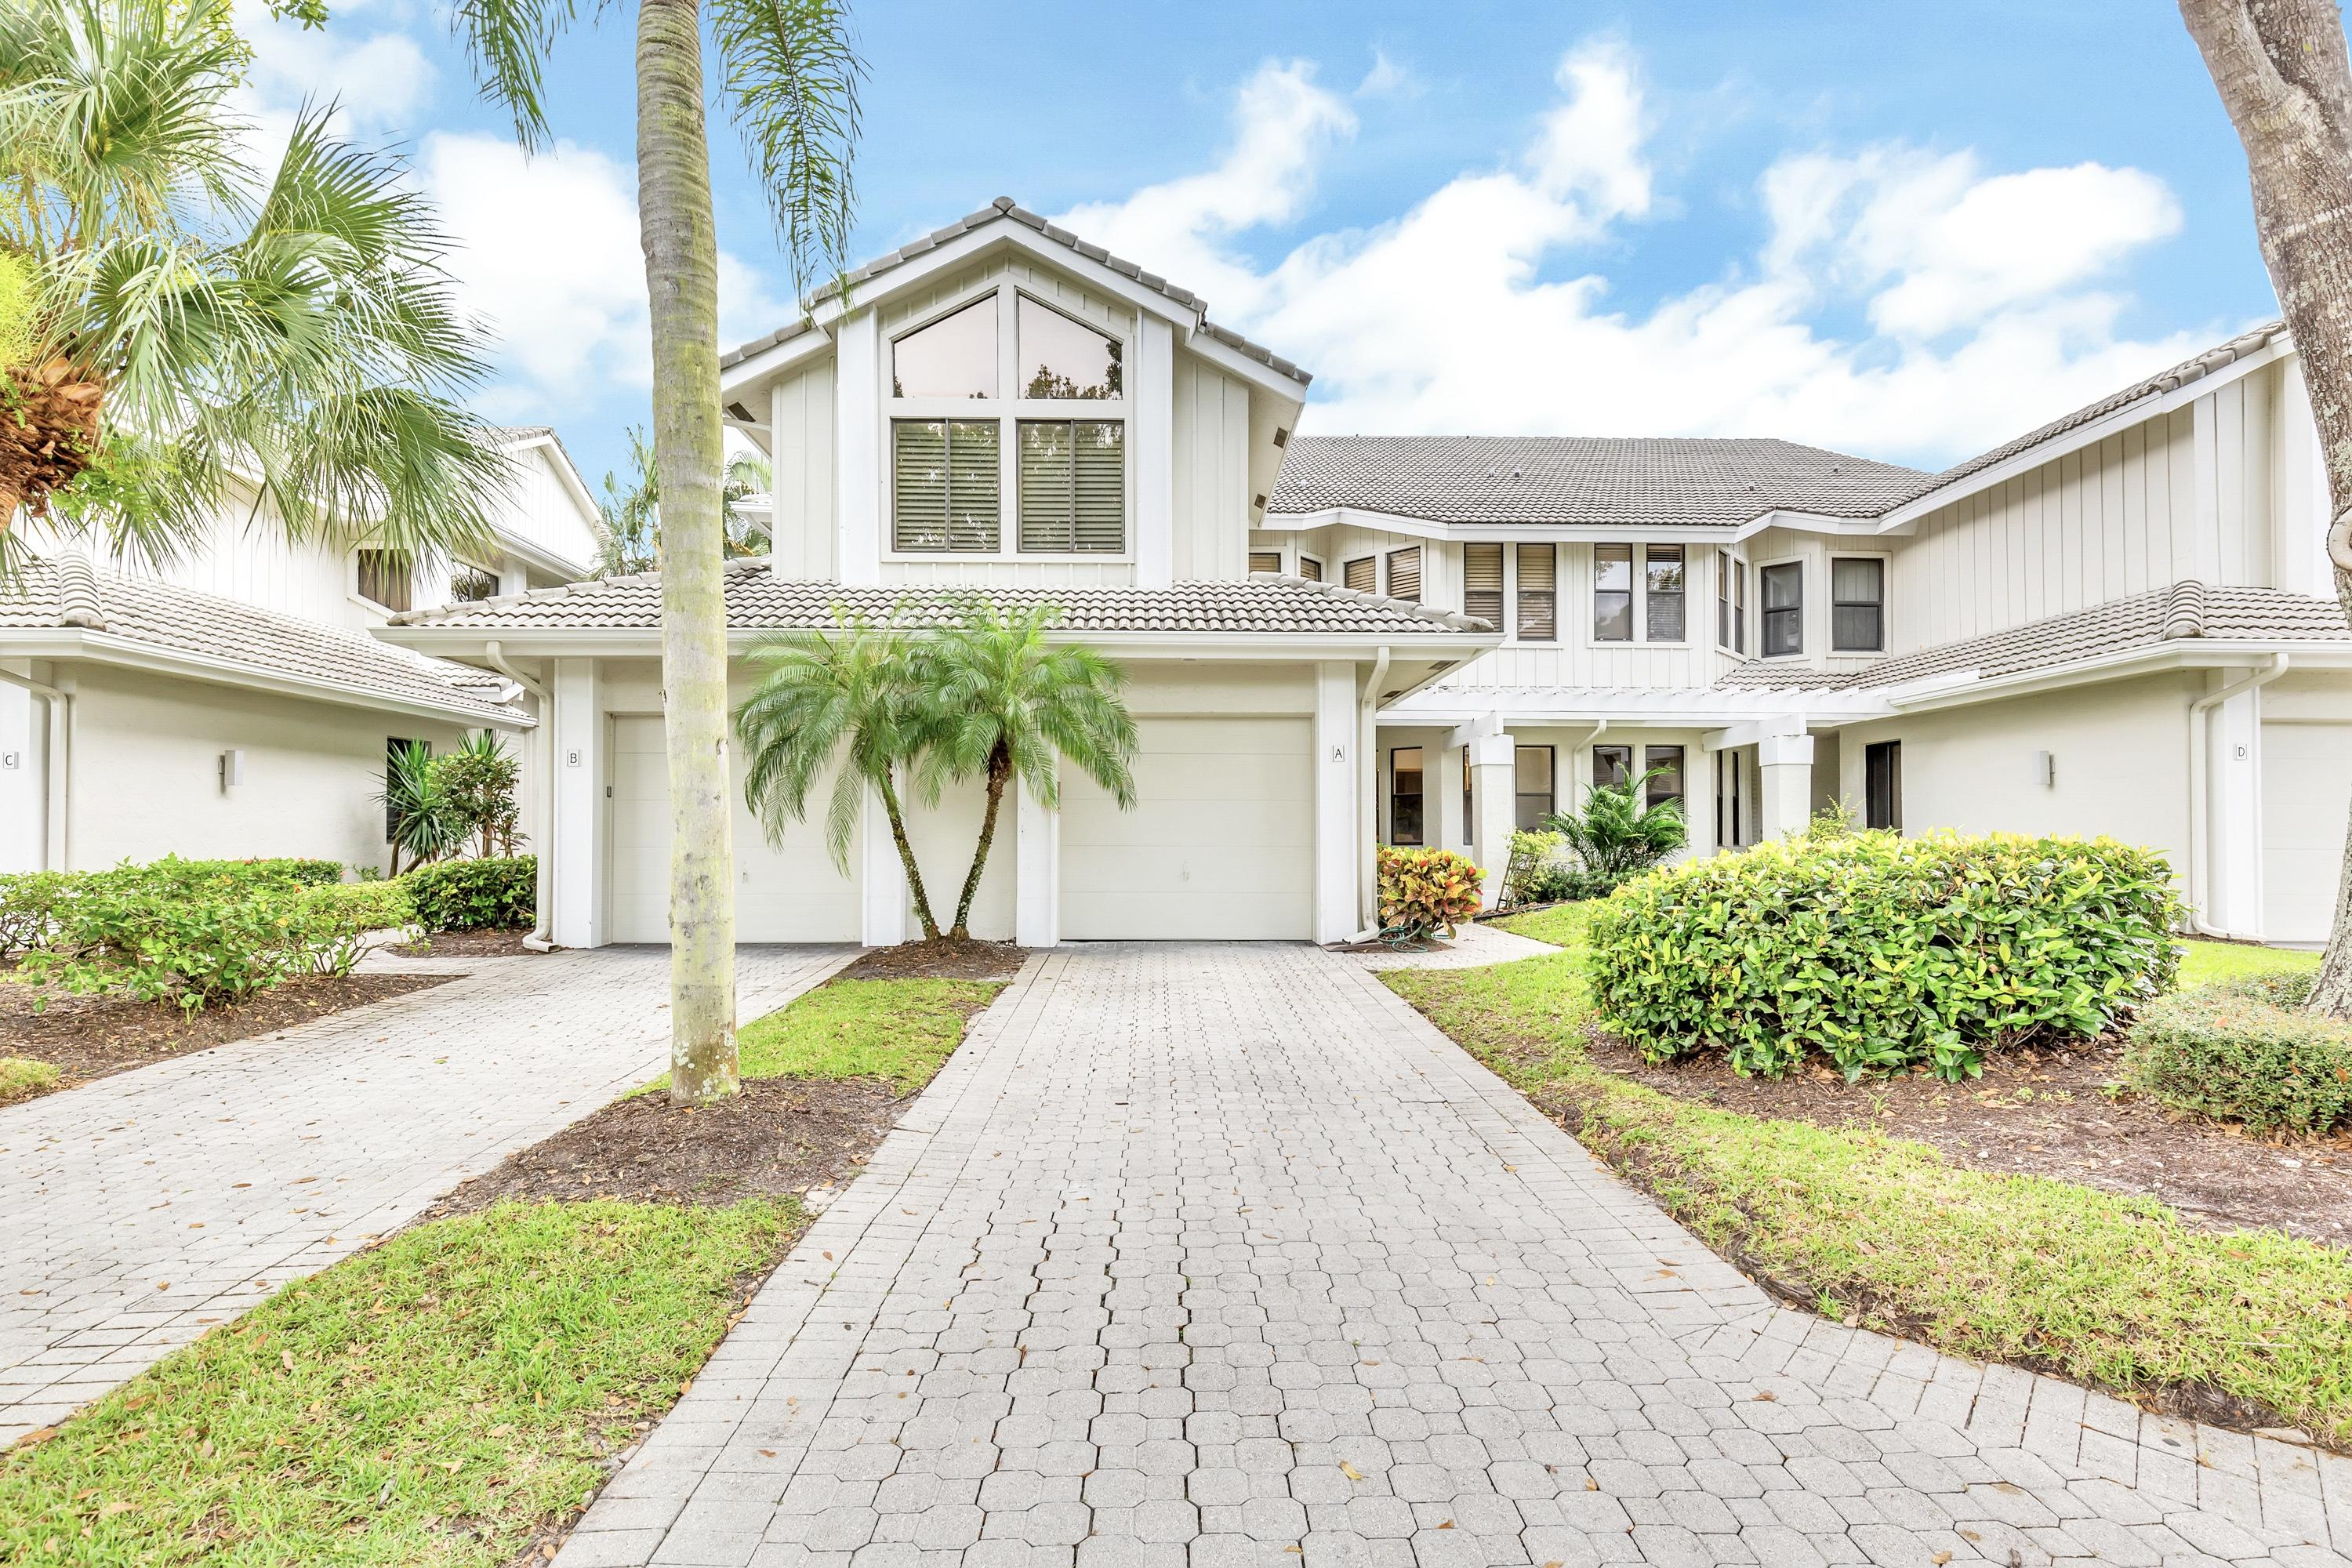 Photo of 17621 Ashbourne Way #A, Boca Raton, FL 33496